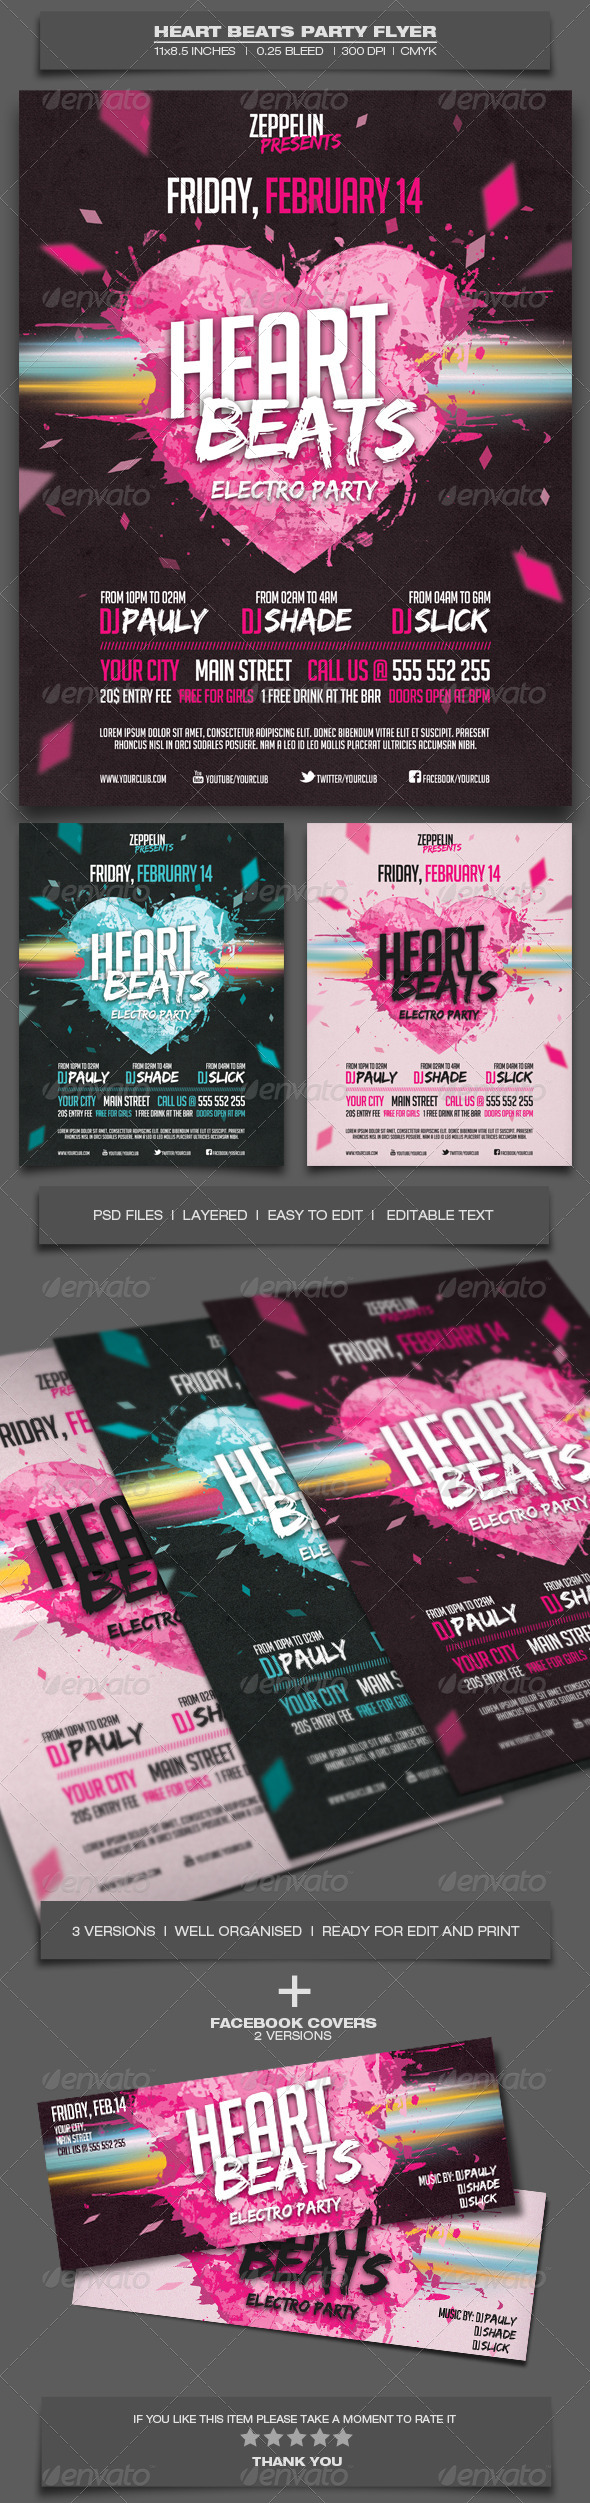 Heart Beats Party - Event Flyer Template - Clubs & Parties Events